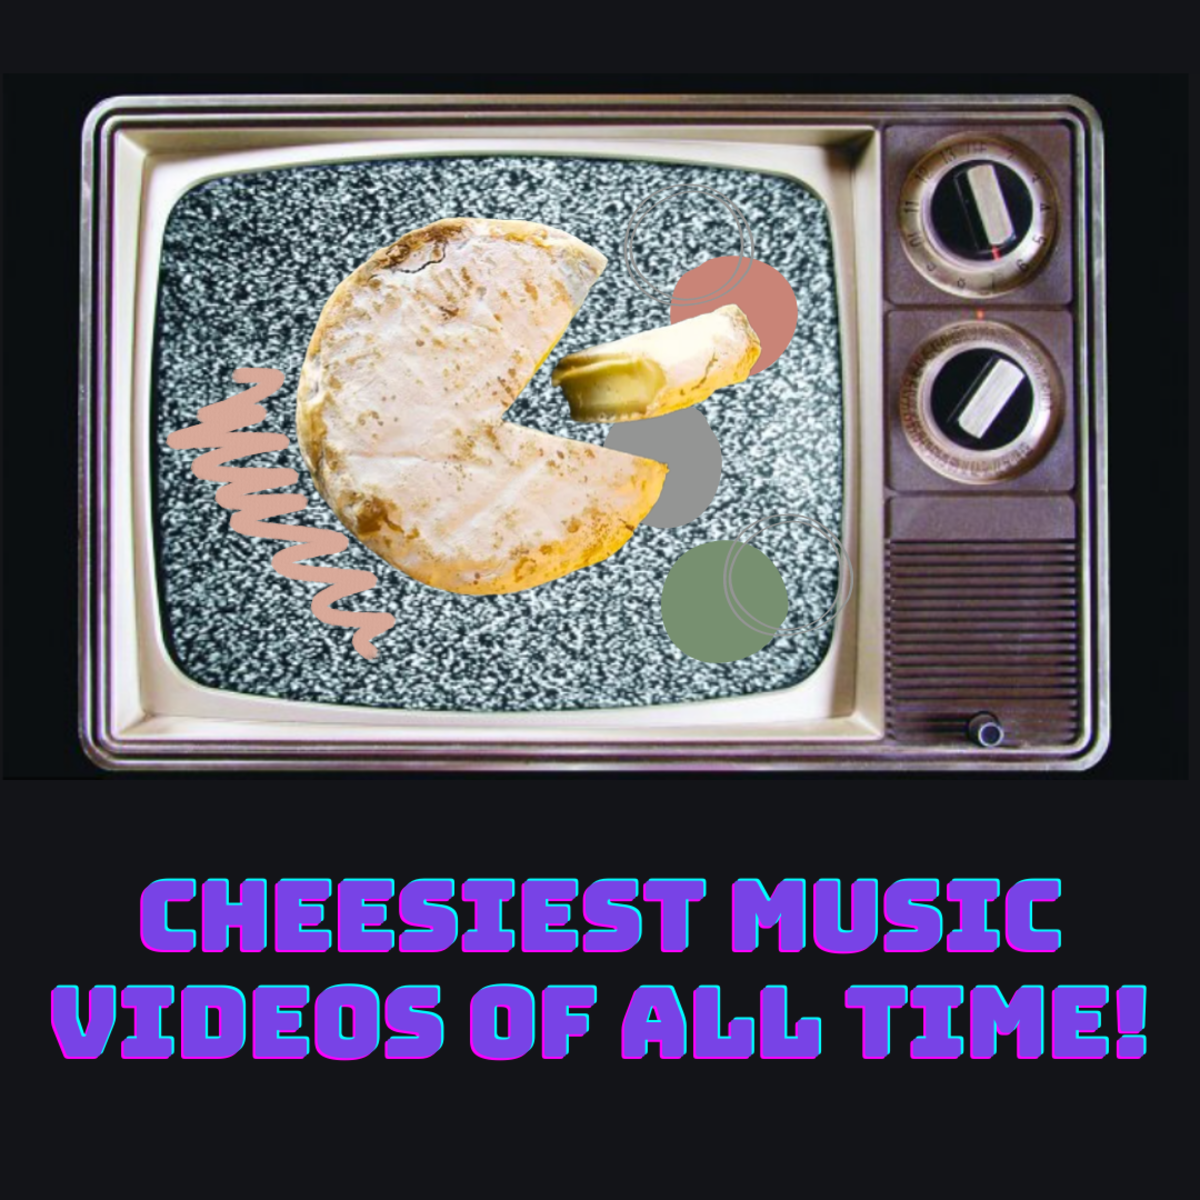 The 7 Cheesiest Music Videos of All Time